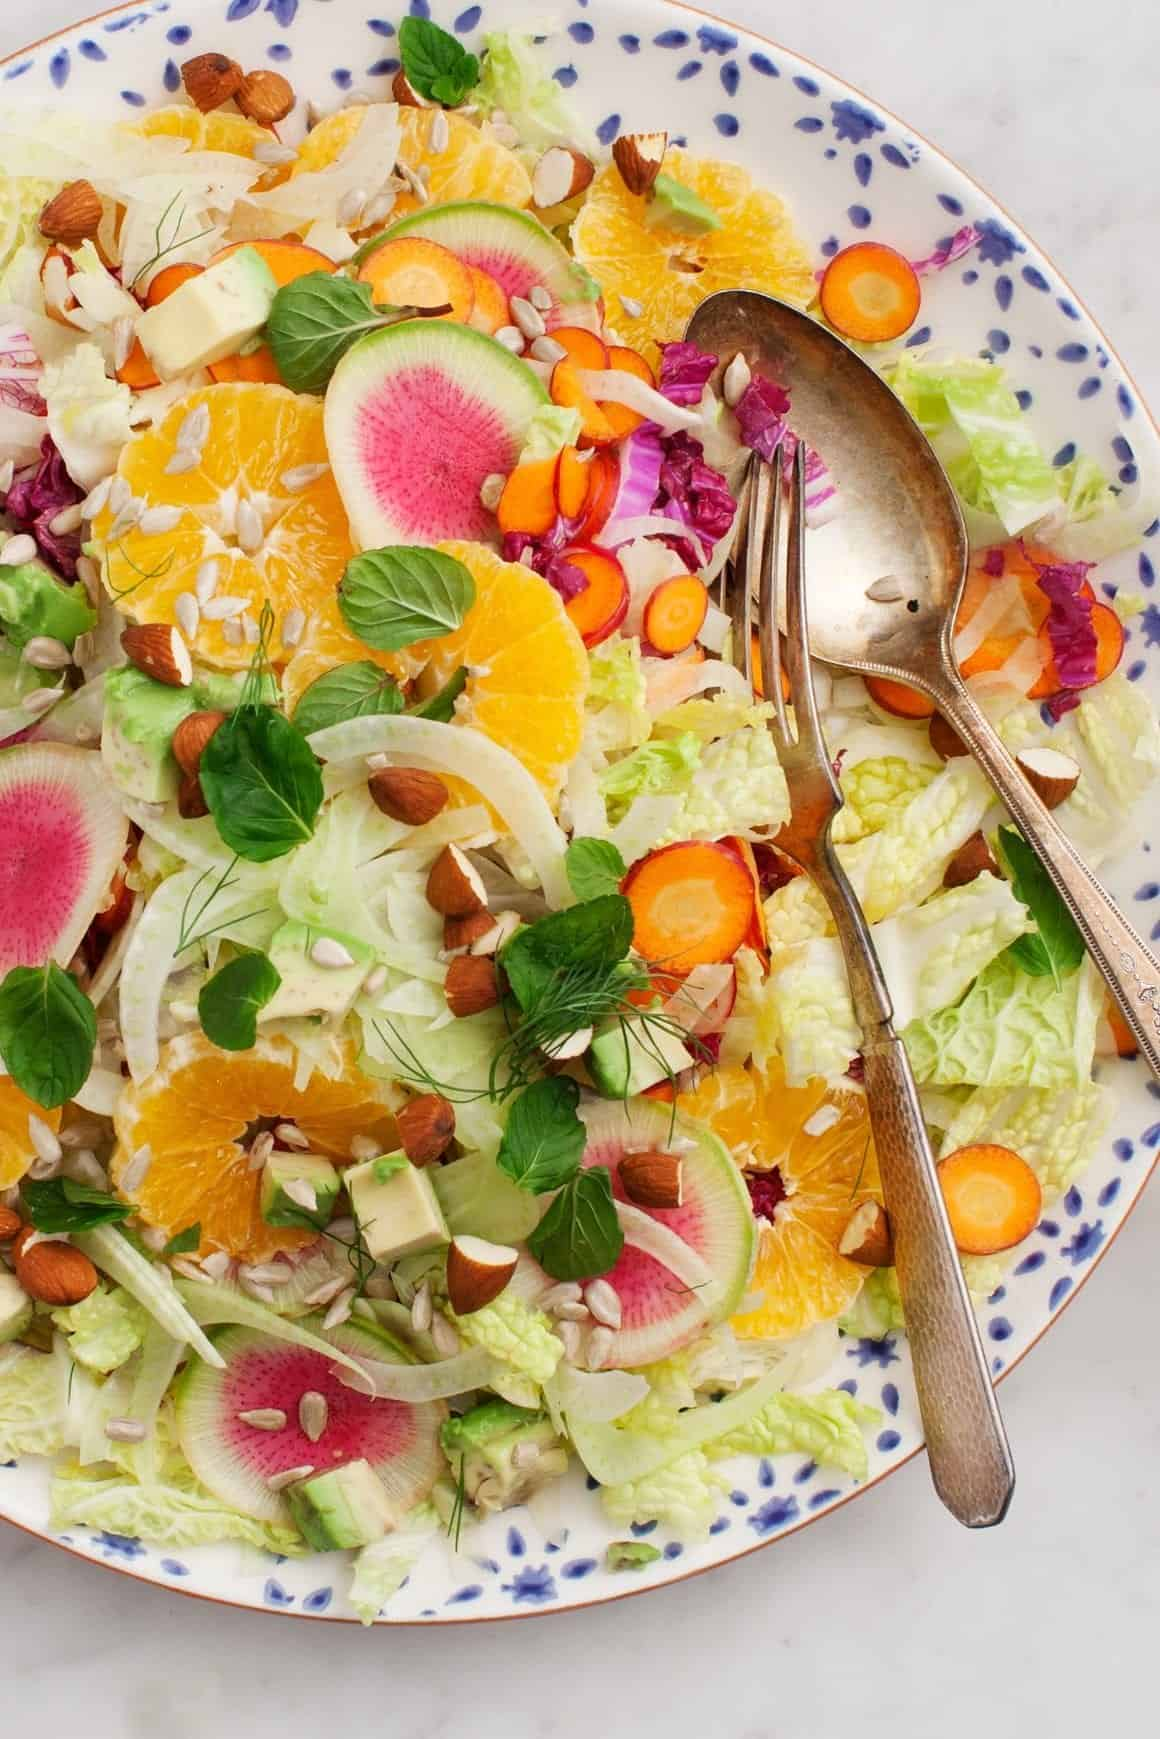 Fennel & Clementine Chopped Salad